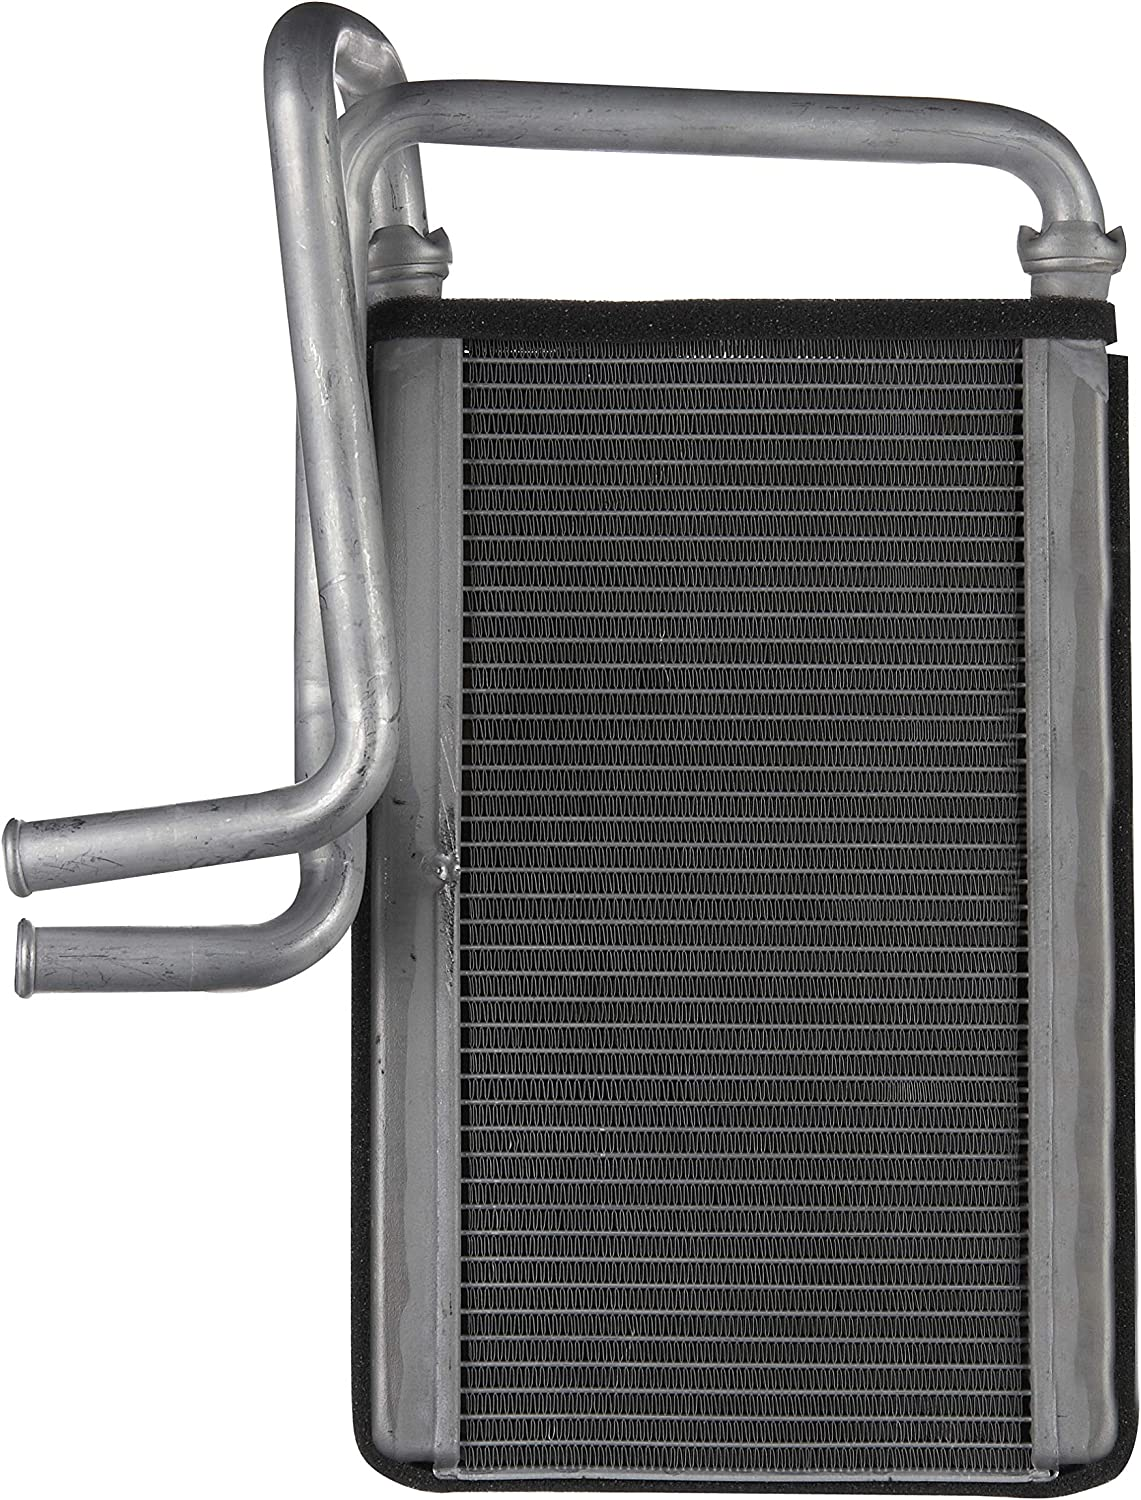 Regular store Free shipping anywhere in the nation Spectra Premium Heater 93043